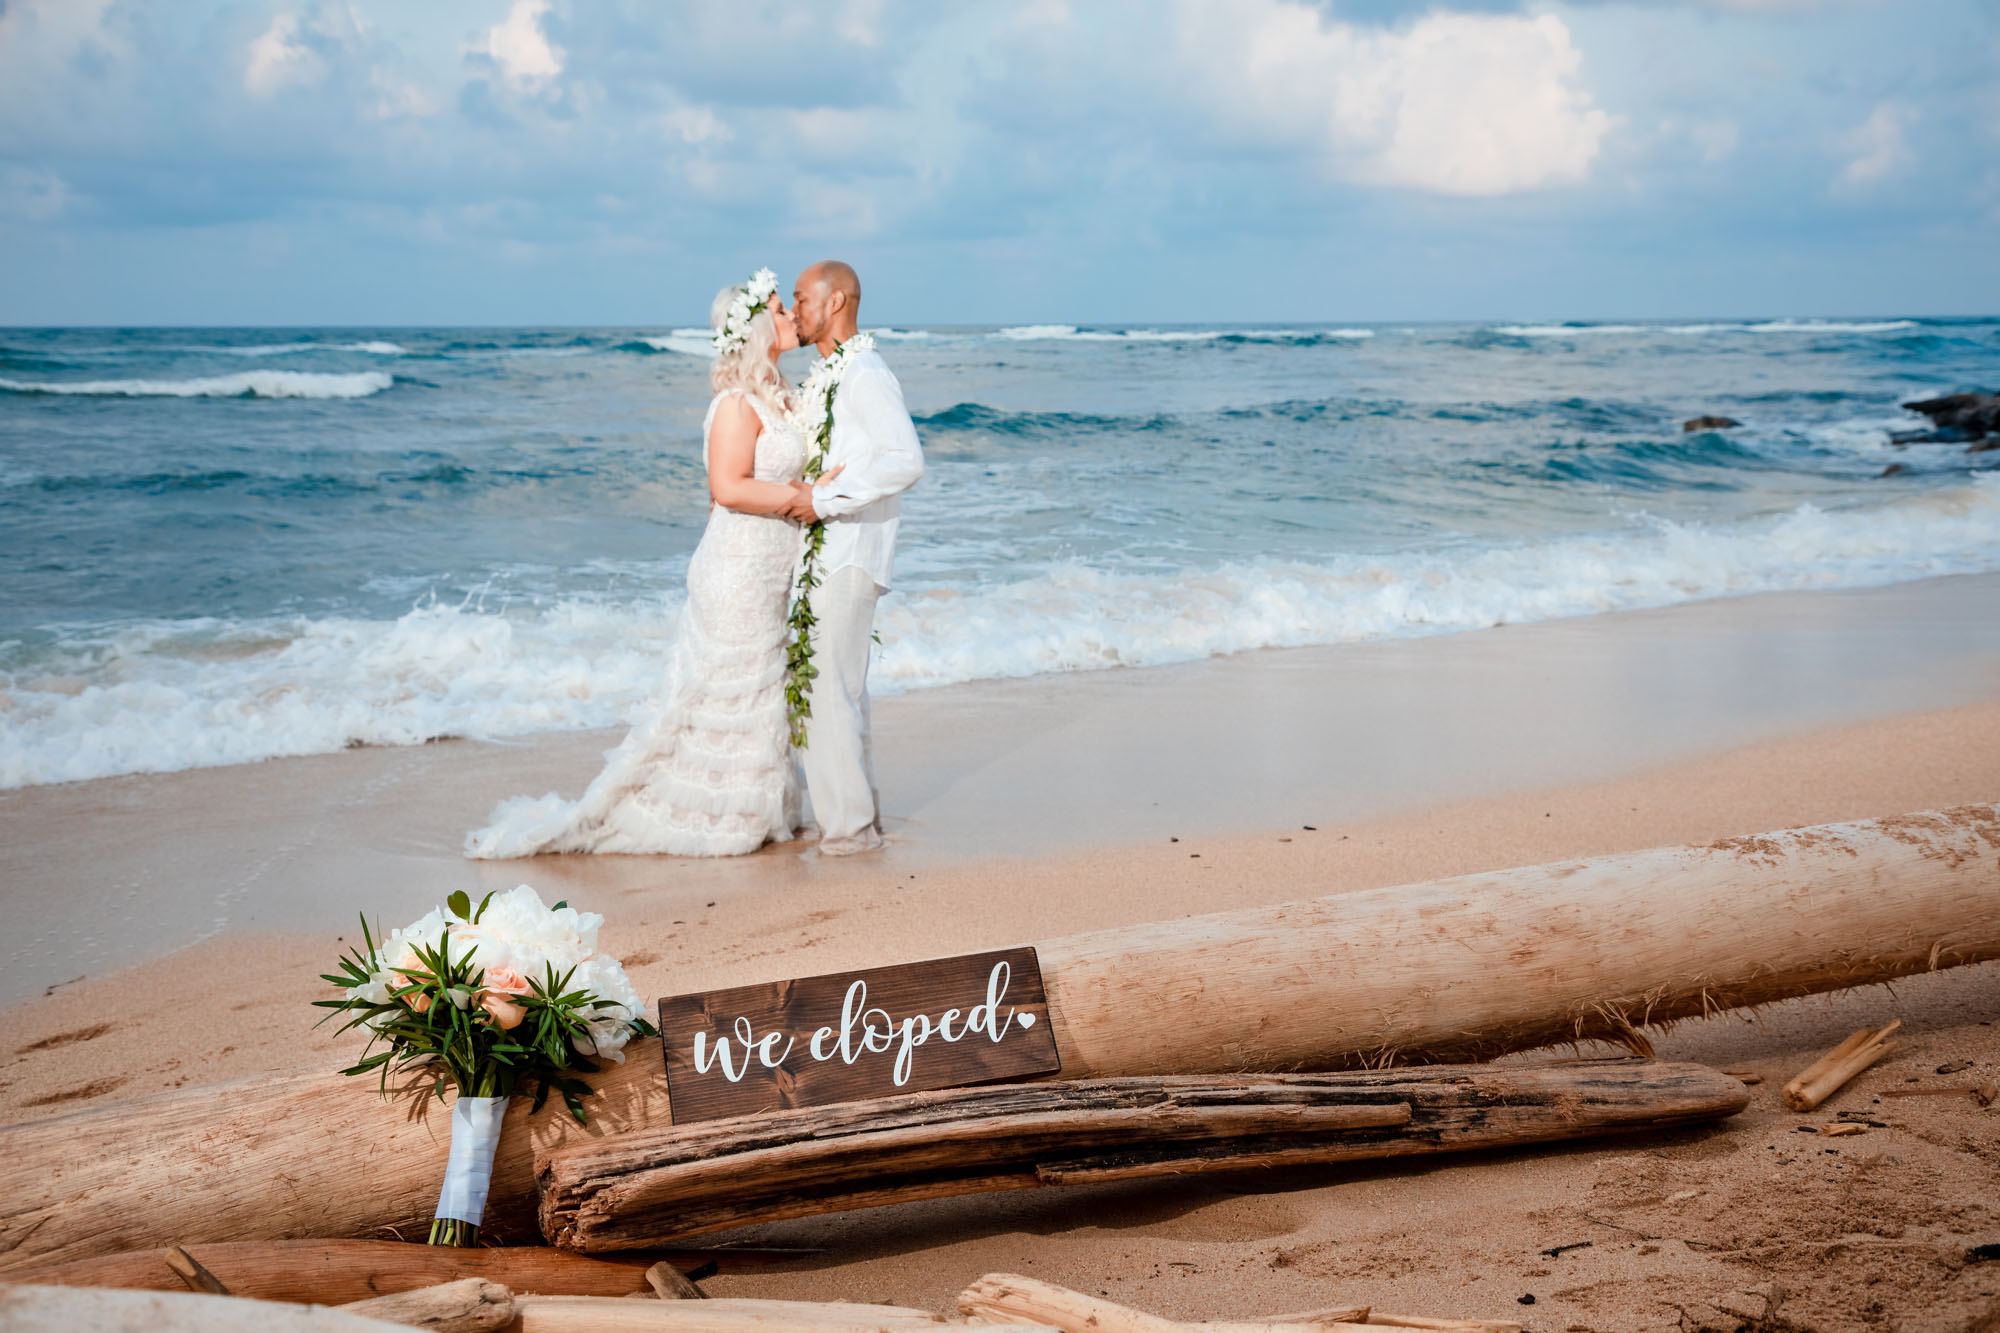 bride groom we eloped sign beach ocean kauai sunset